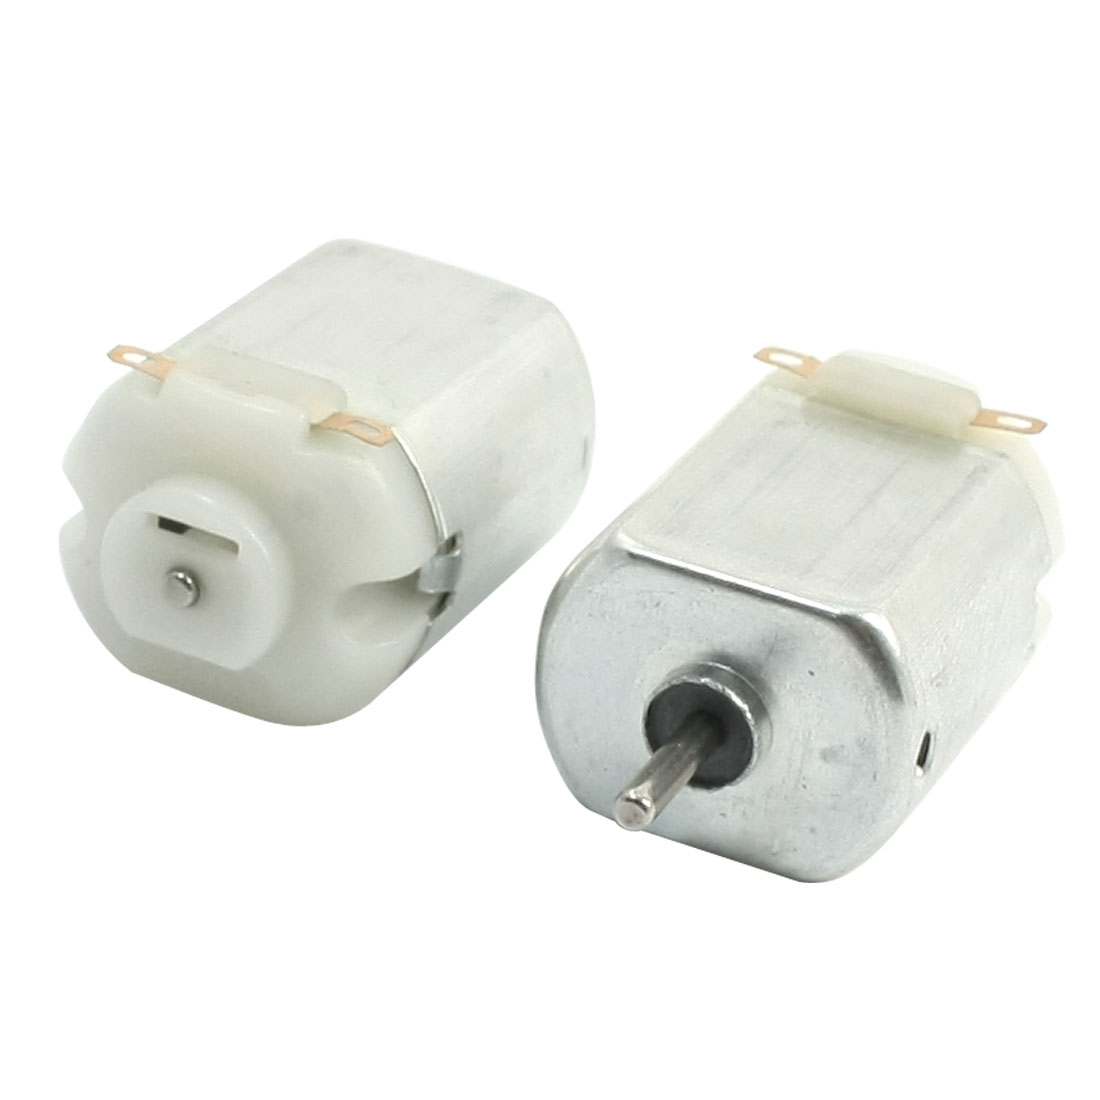 High-Torque-Cylinder-Shaped-DIY-Toy-Motor-DC-3V-9000RPM-2-Pcs